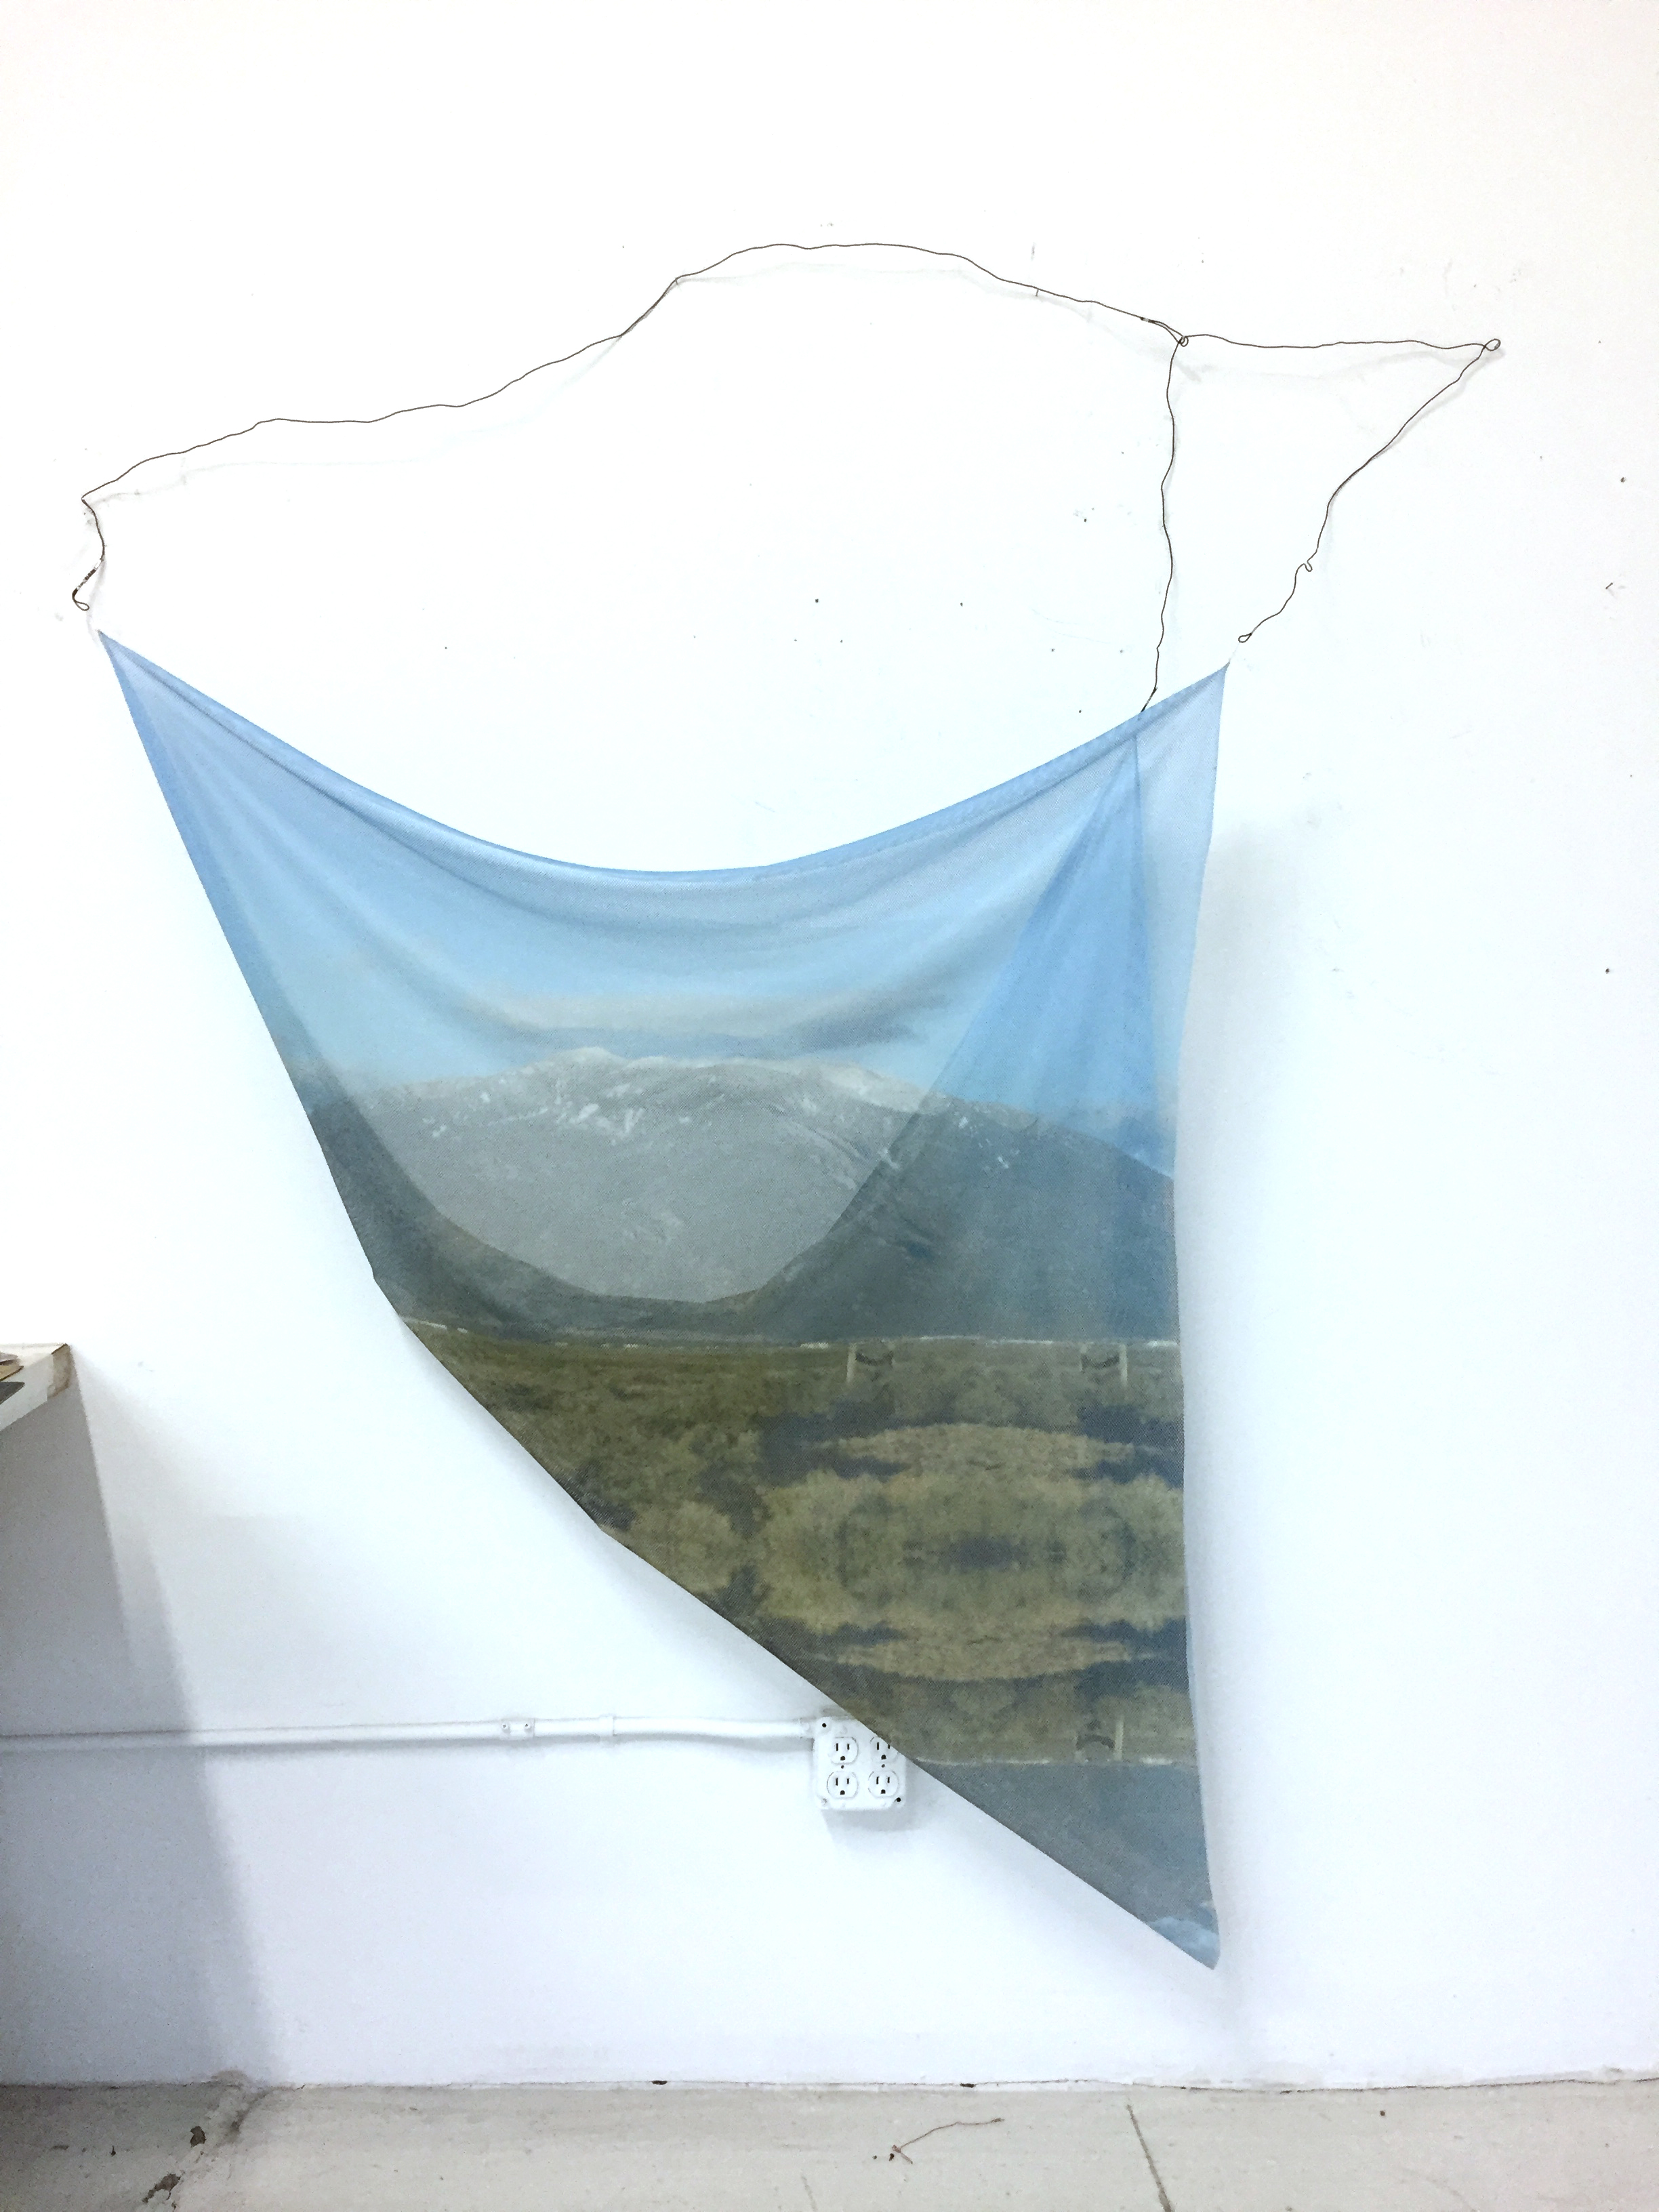 JACQUELINE SHERLOCK NORHEIM  West wind , 2017 Acrylic print on nylon, annealed wire, copper wire, solder 60 x 75 inches